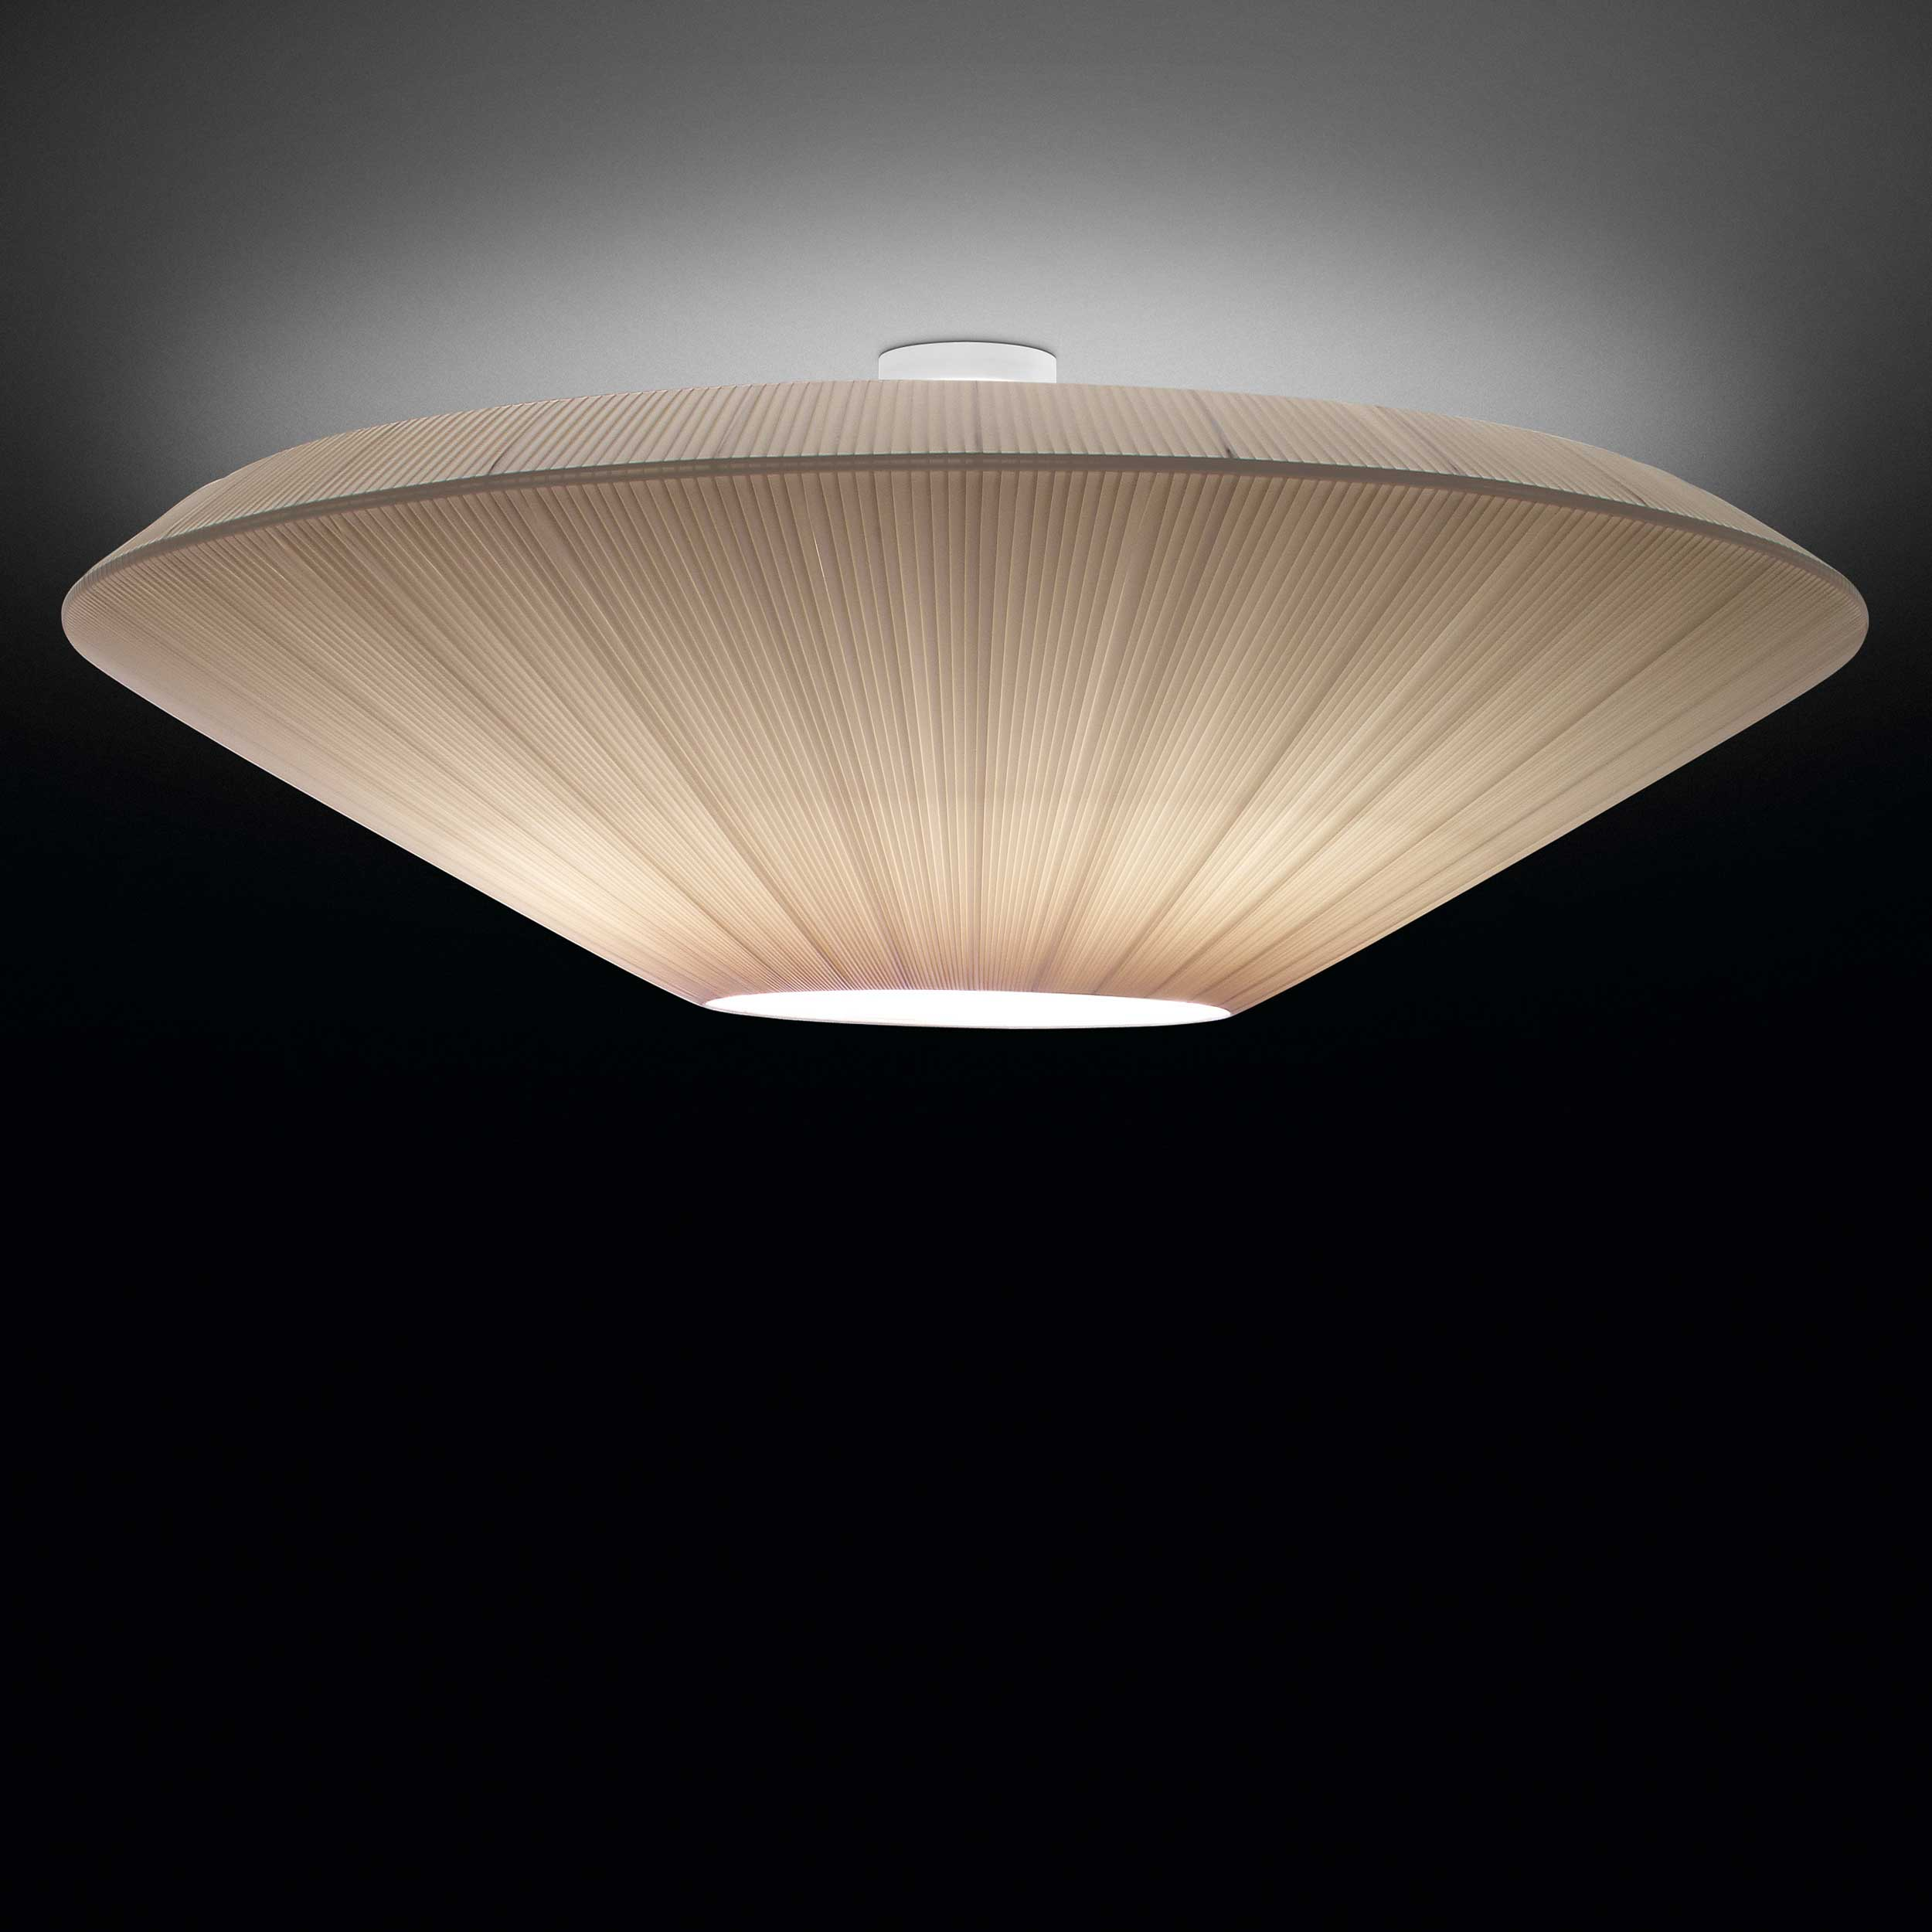 siam 03 semiflush ceiling lamp by bover